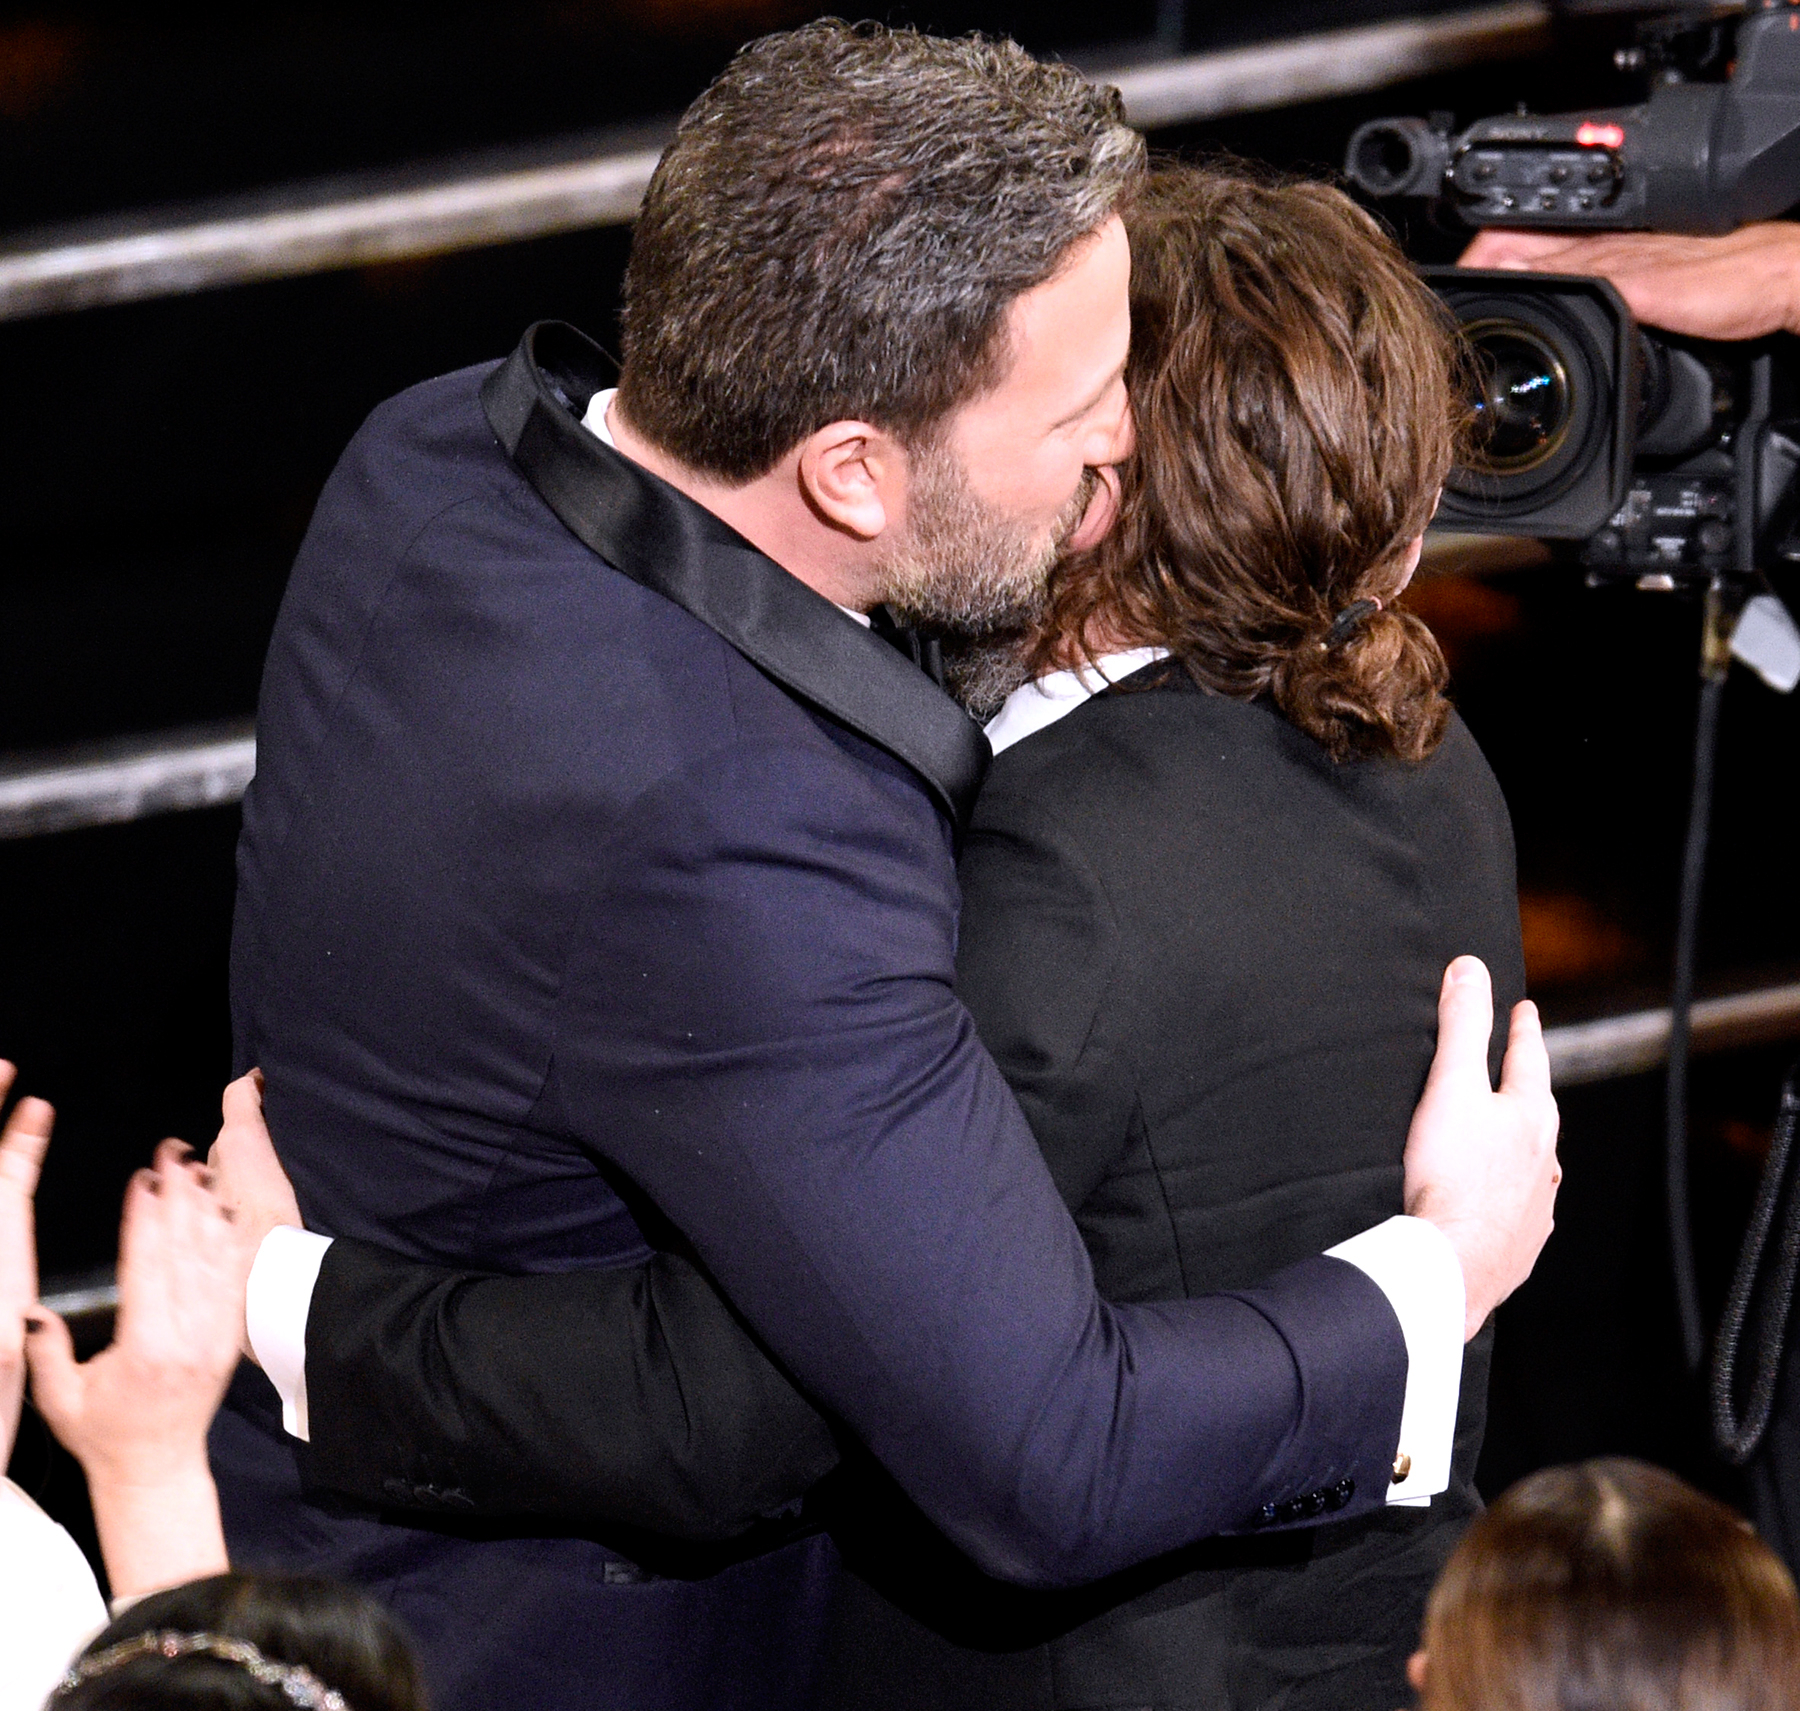 Ben Affleck, left, congratulates Casey Affleck as he accepts the award for best actor in a leading role for 'Manchester by the Sea' at the Oscars on Sunday, Feb. 26, 2017, at the Dolby Theatre in Los Angeles.